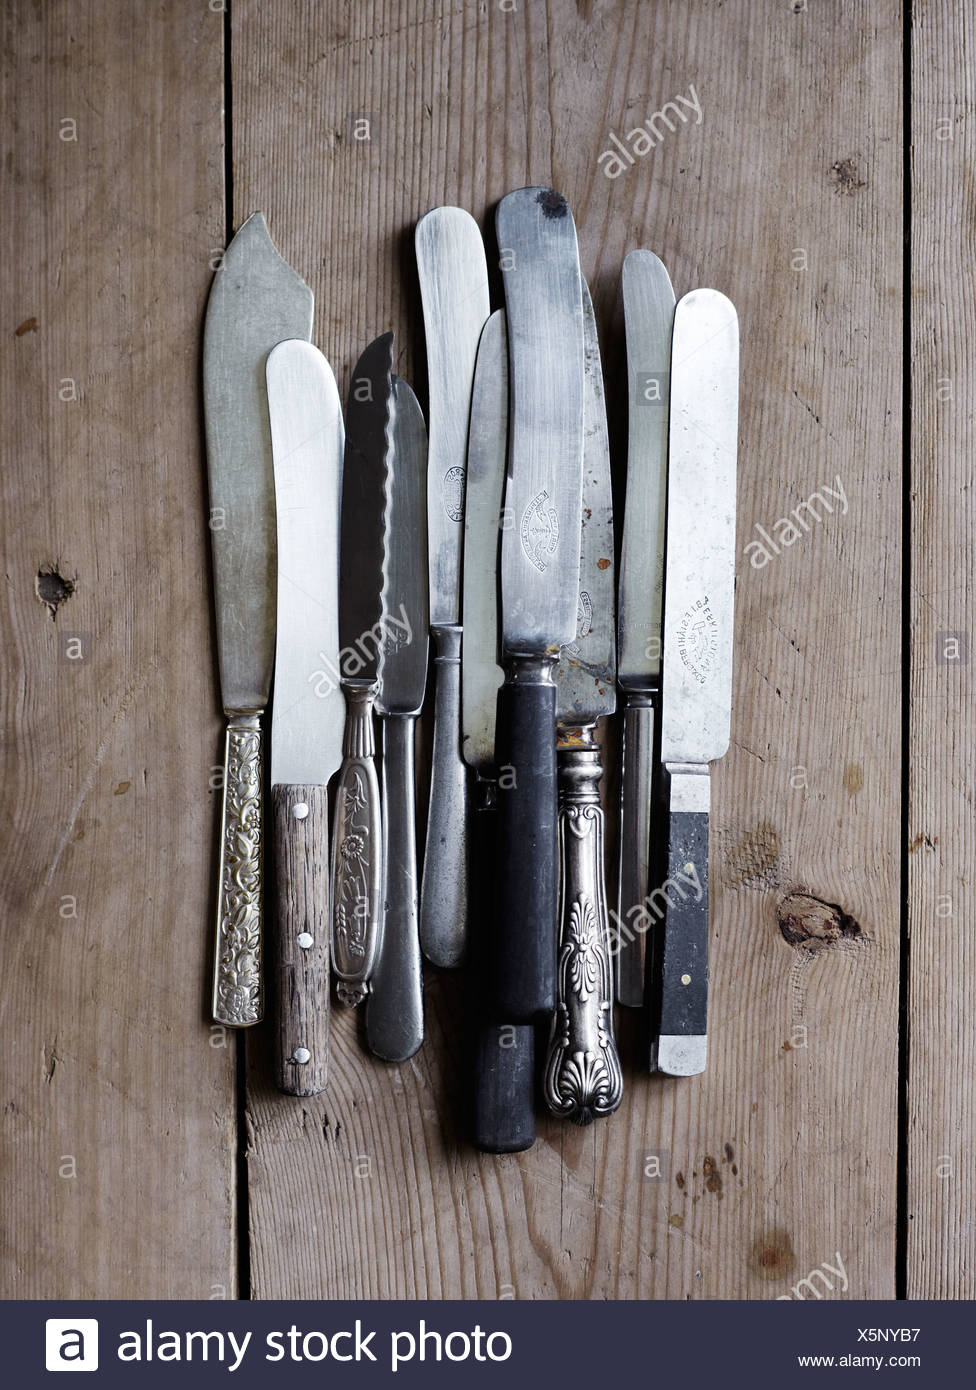 Scandinavia, Sweden, Knives on wooden background, close-up - Stock Image